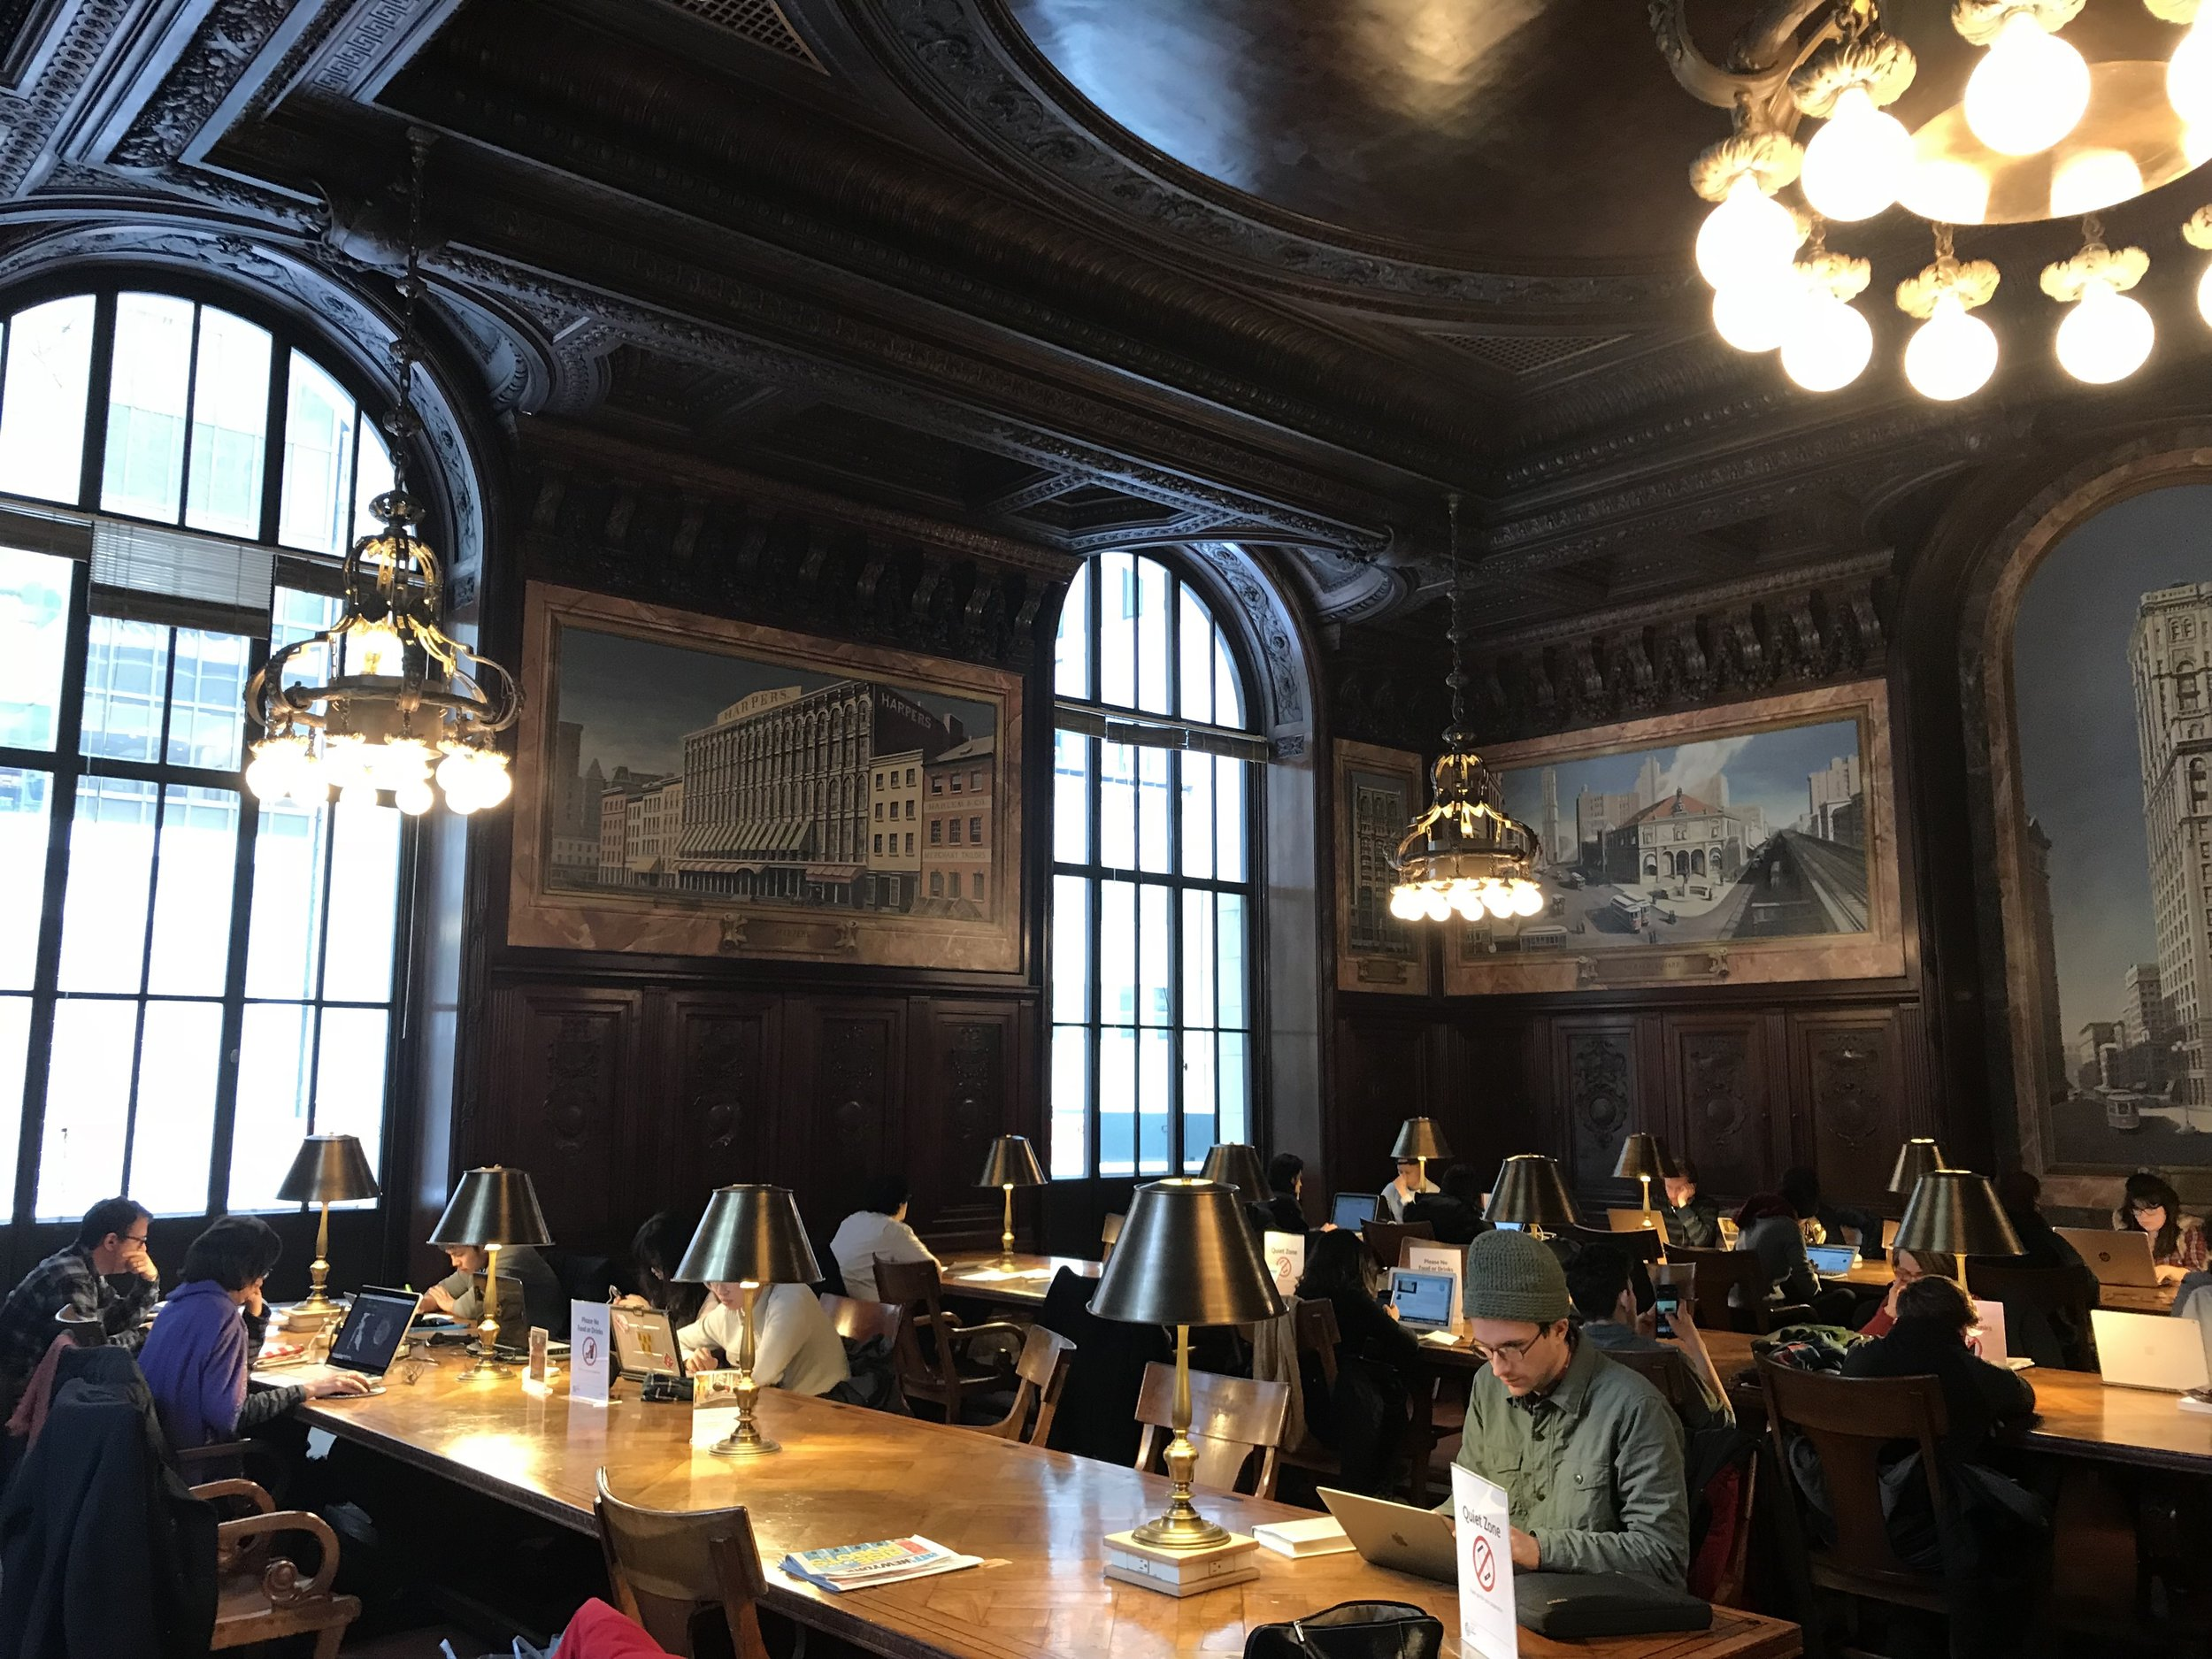 The 42nd Street New York Public Library has the reverent quiet of the singularly purposed